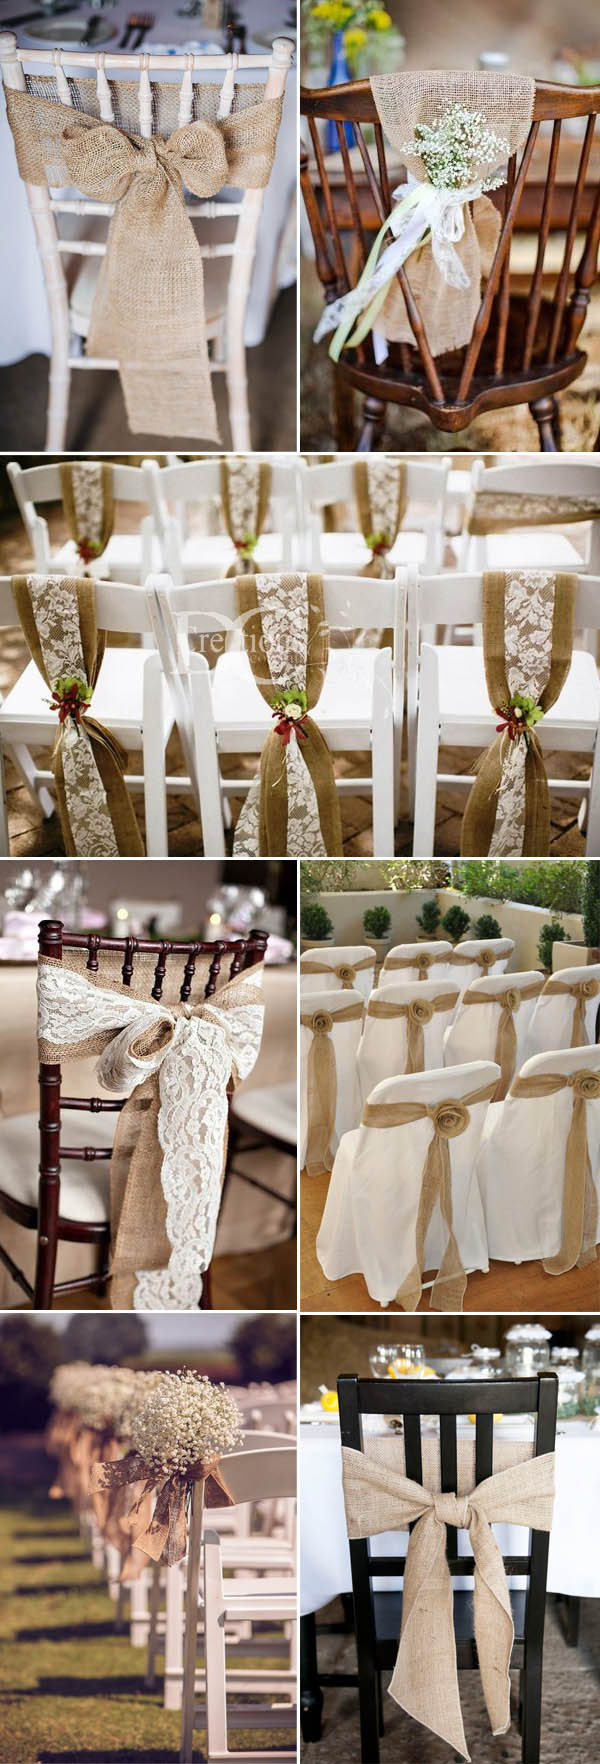 The most complete burlap rustic wedding ideas for your for Table and chair decorations for weddings